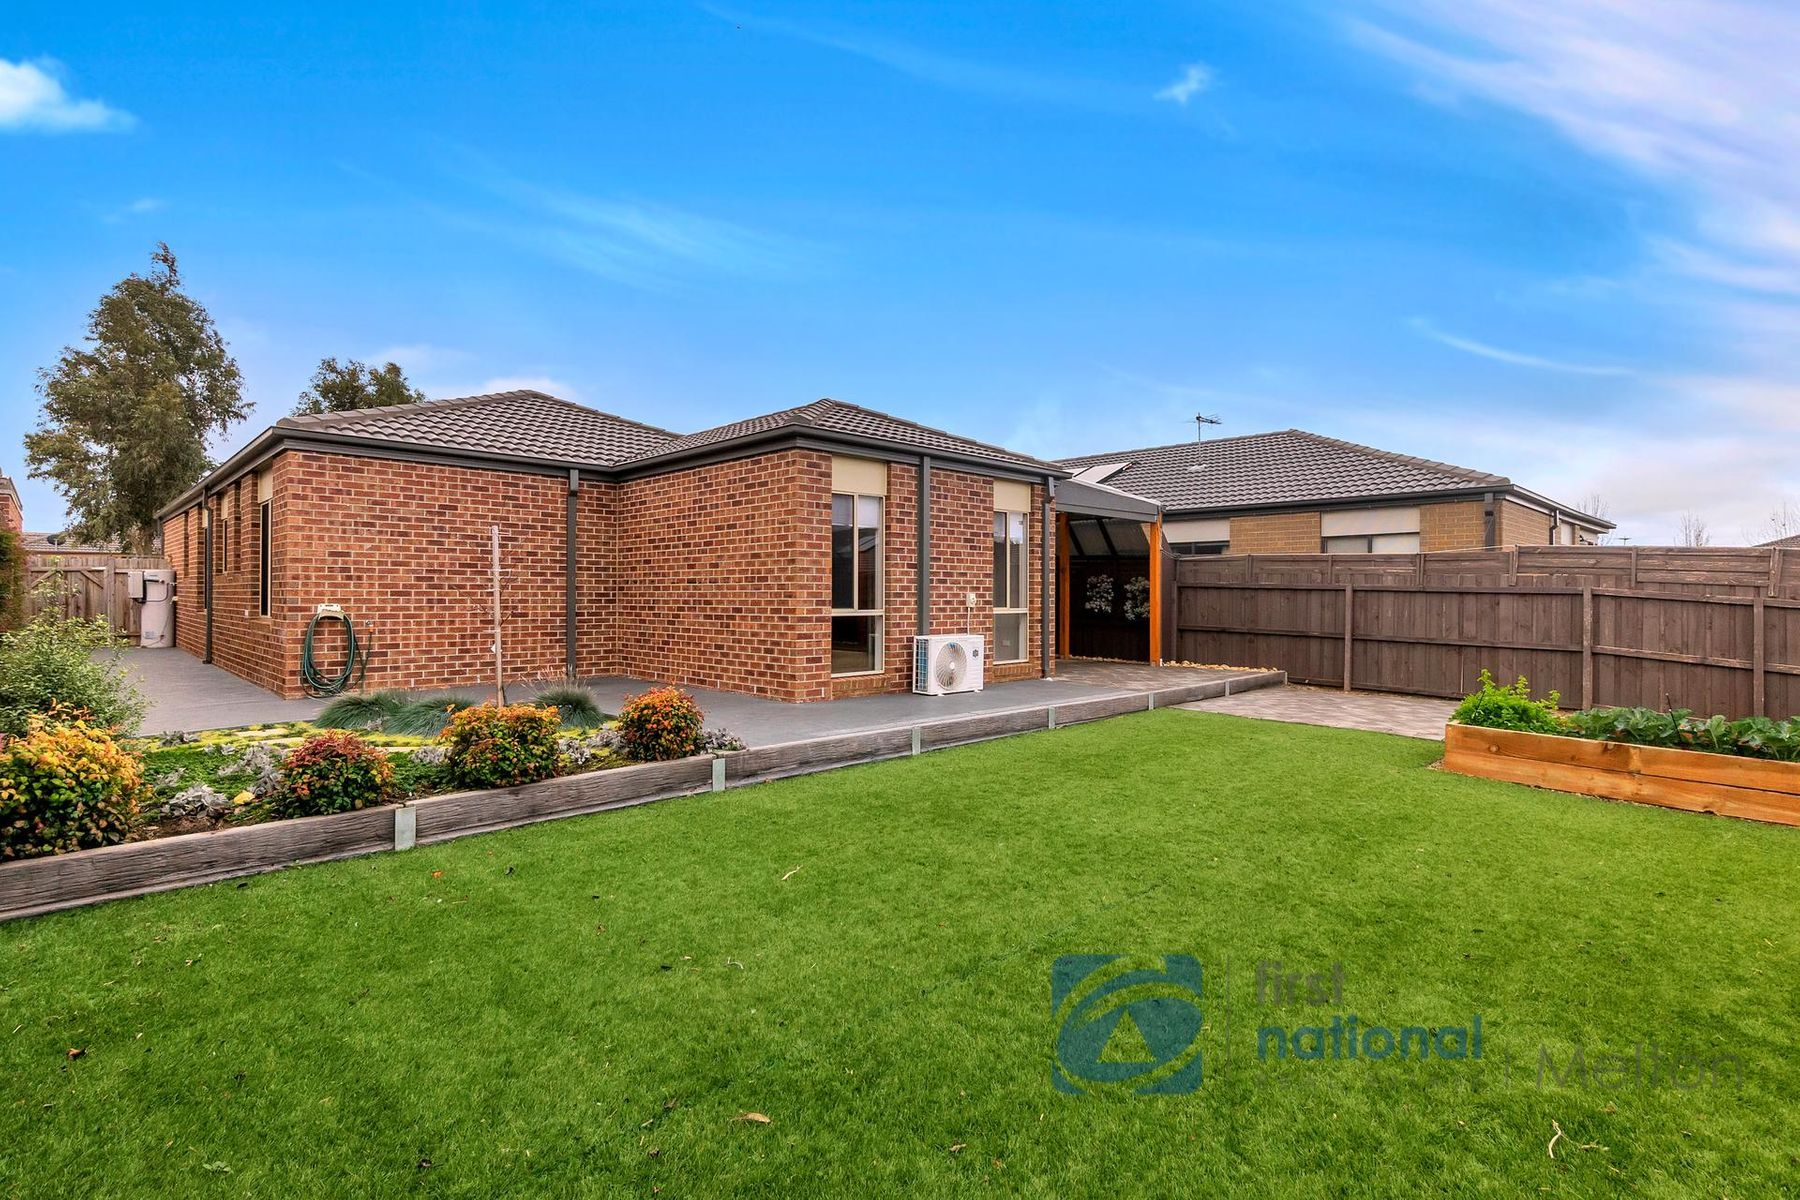 28 Mint Boulevard, Harkness, VIC 3337